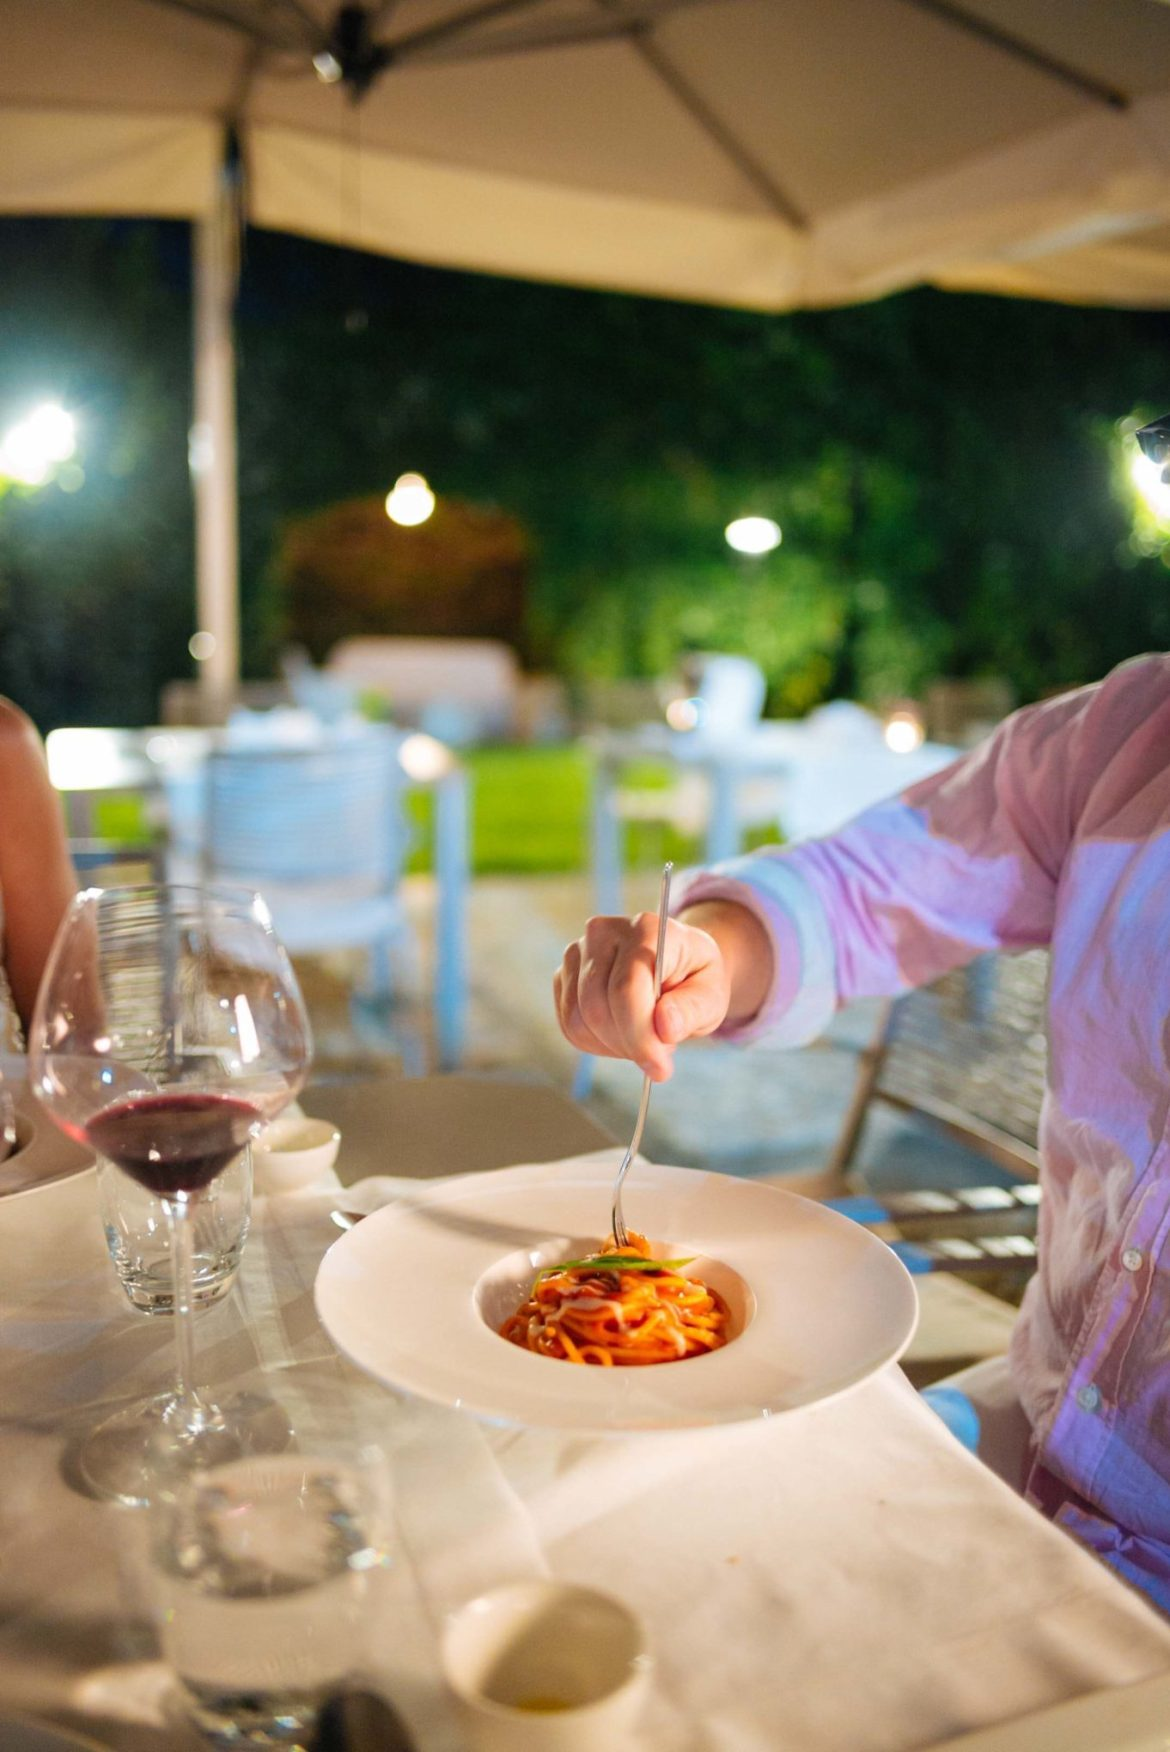 Fish and pasta and more at the best restaurants in italy, at DonnaCarmela restaurant in Sicily